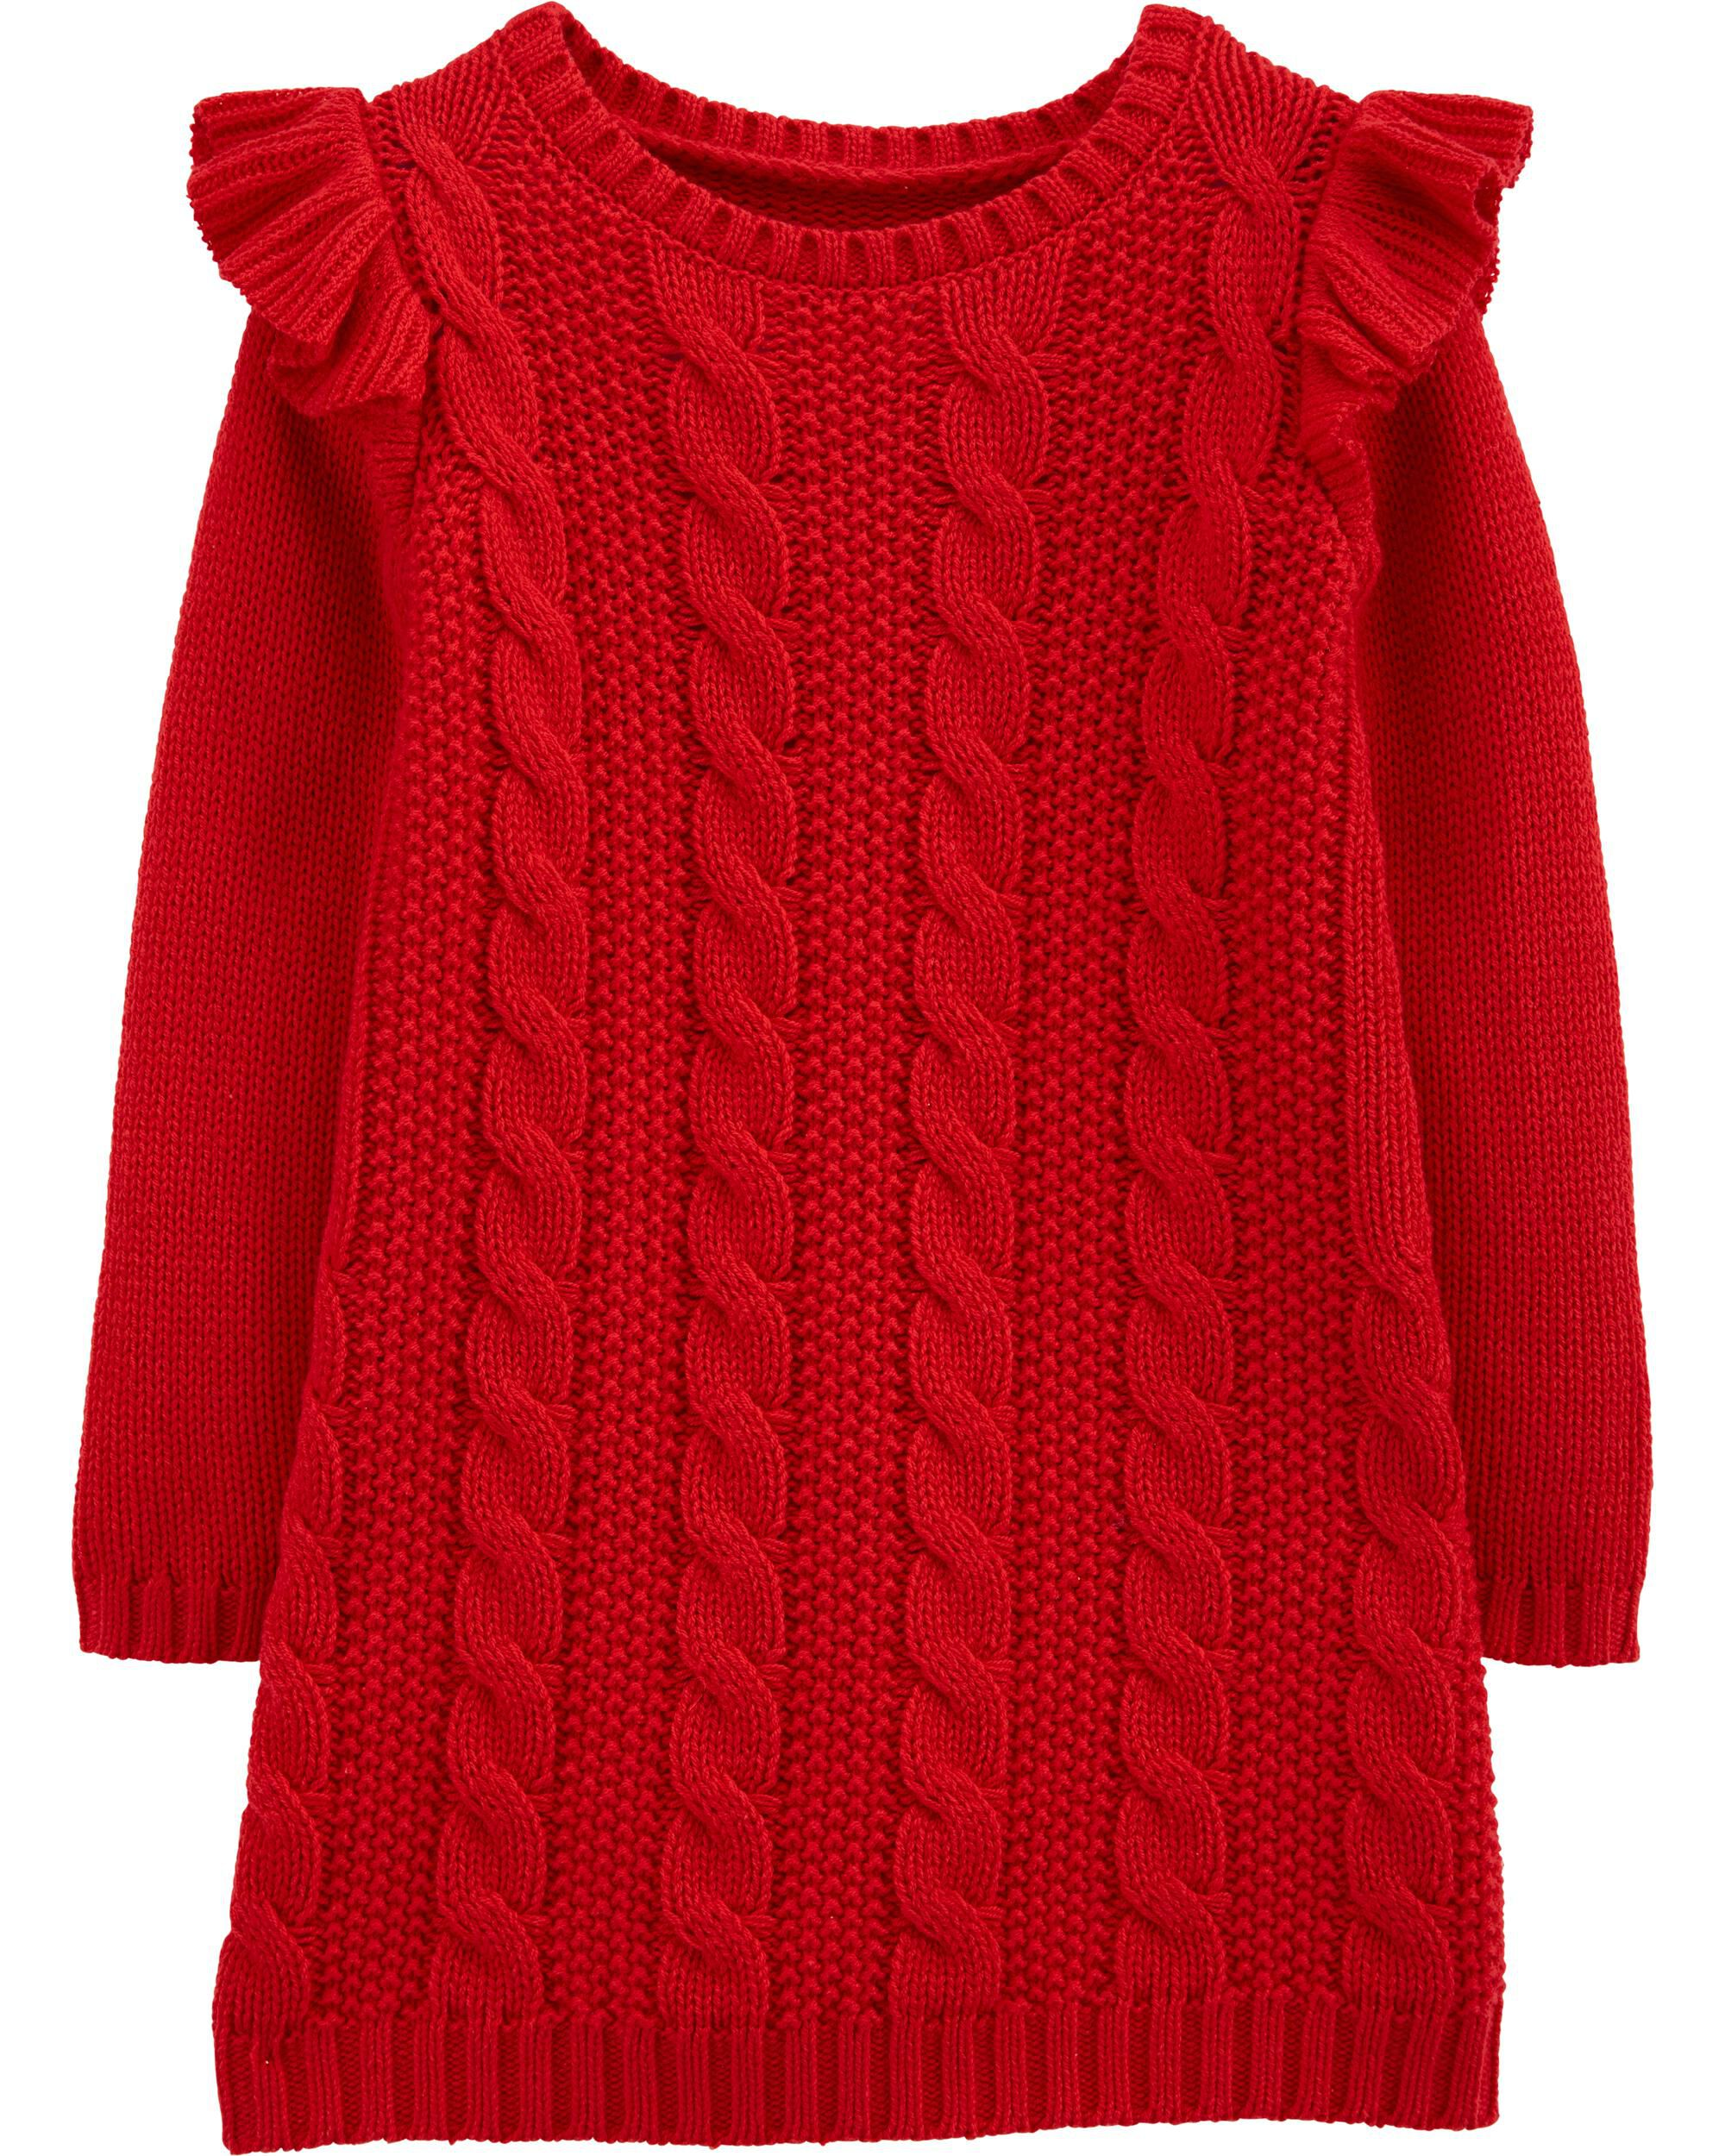 Cable Knit Sweater Dress |